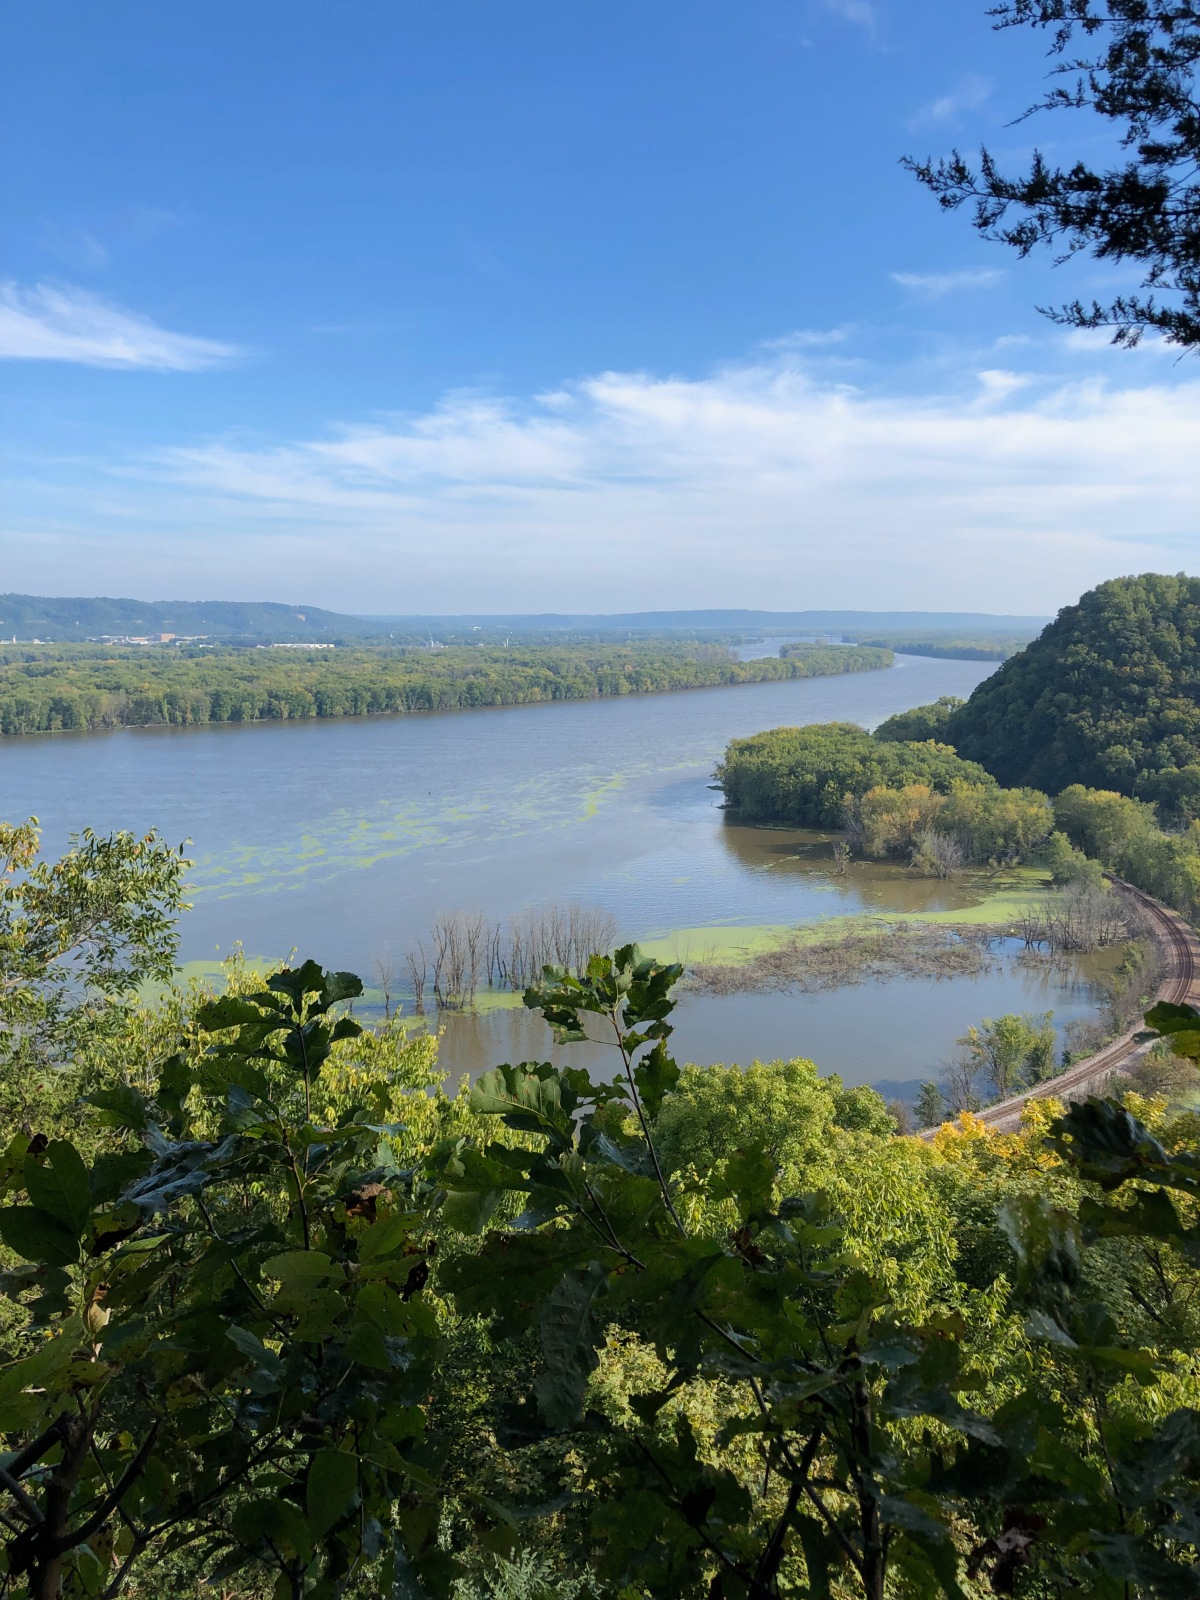 The view of the Mississippi River from Effigy Mounds